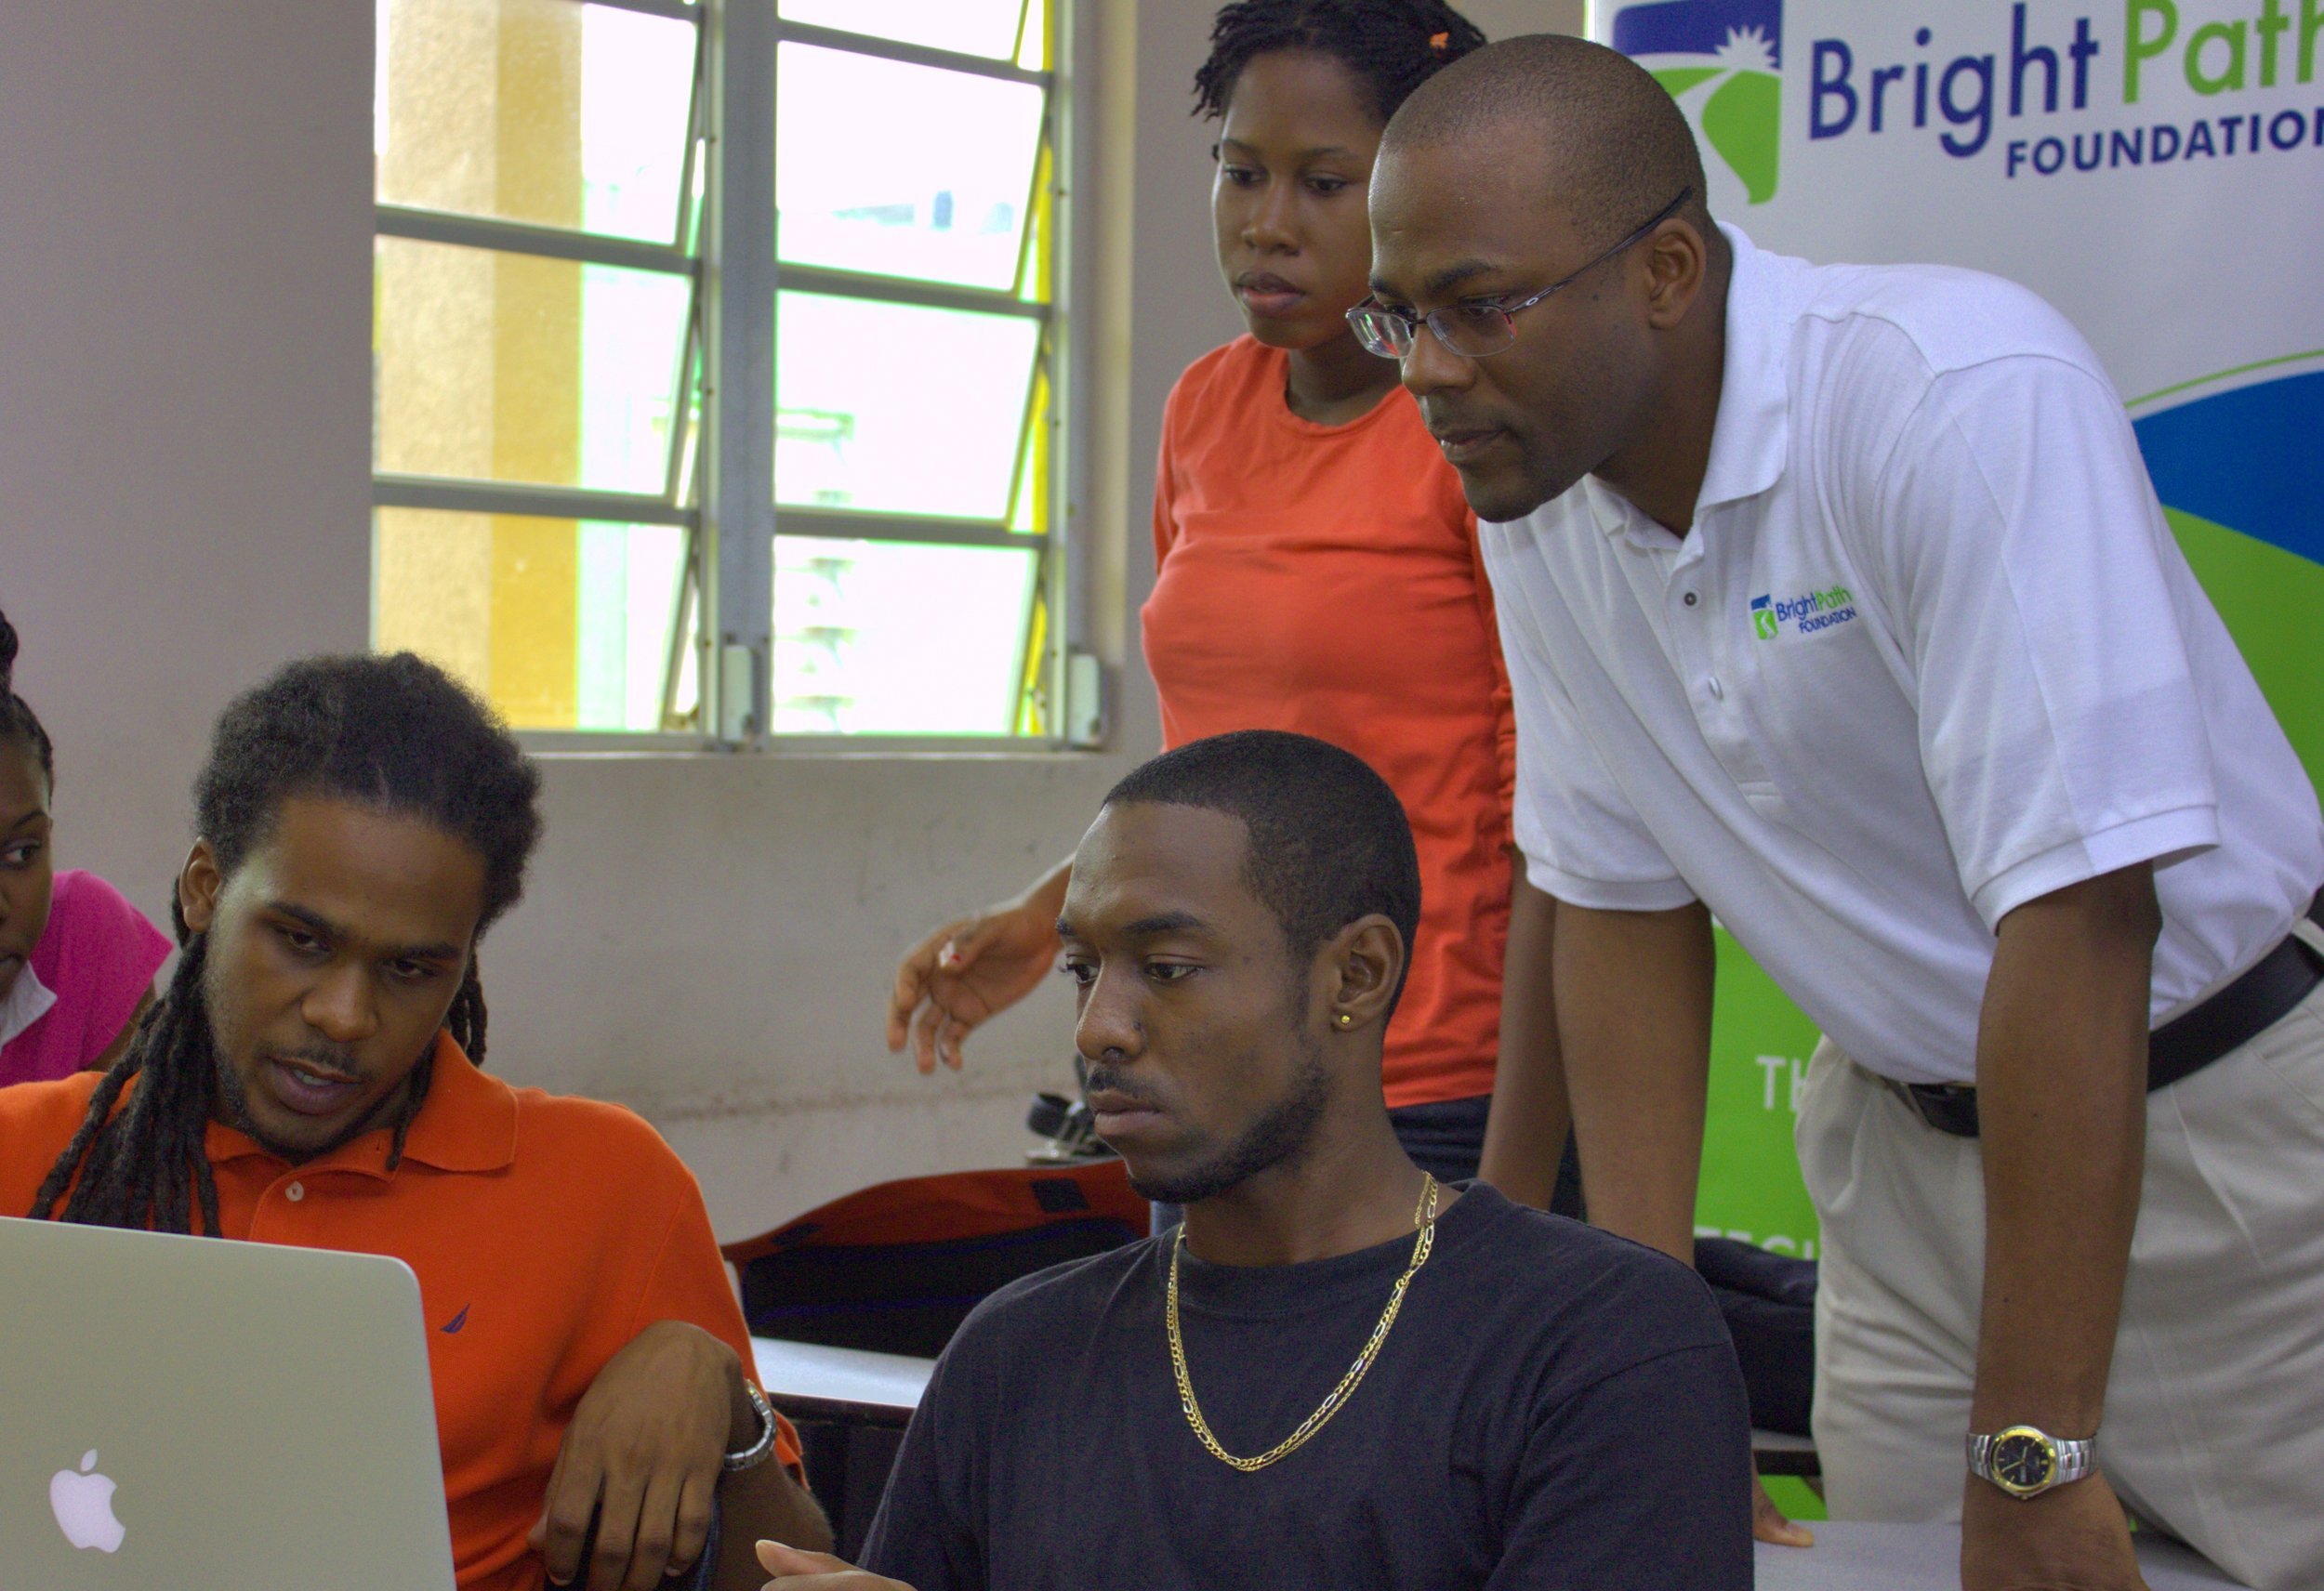 BrightPath Executive Director Bevil Wooding, right, guides participants in the Dominica Mobile App Workshop, which runs from August 19 to 24 at Dominica State College, Roseau. Photo courtesy BrightPath Foundation.